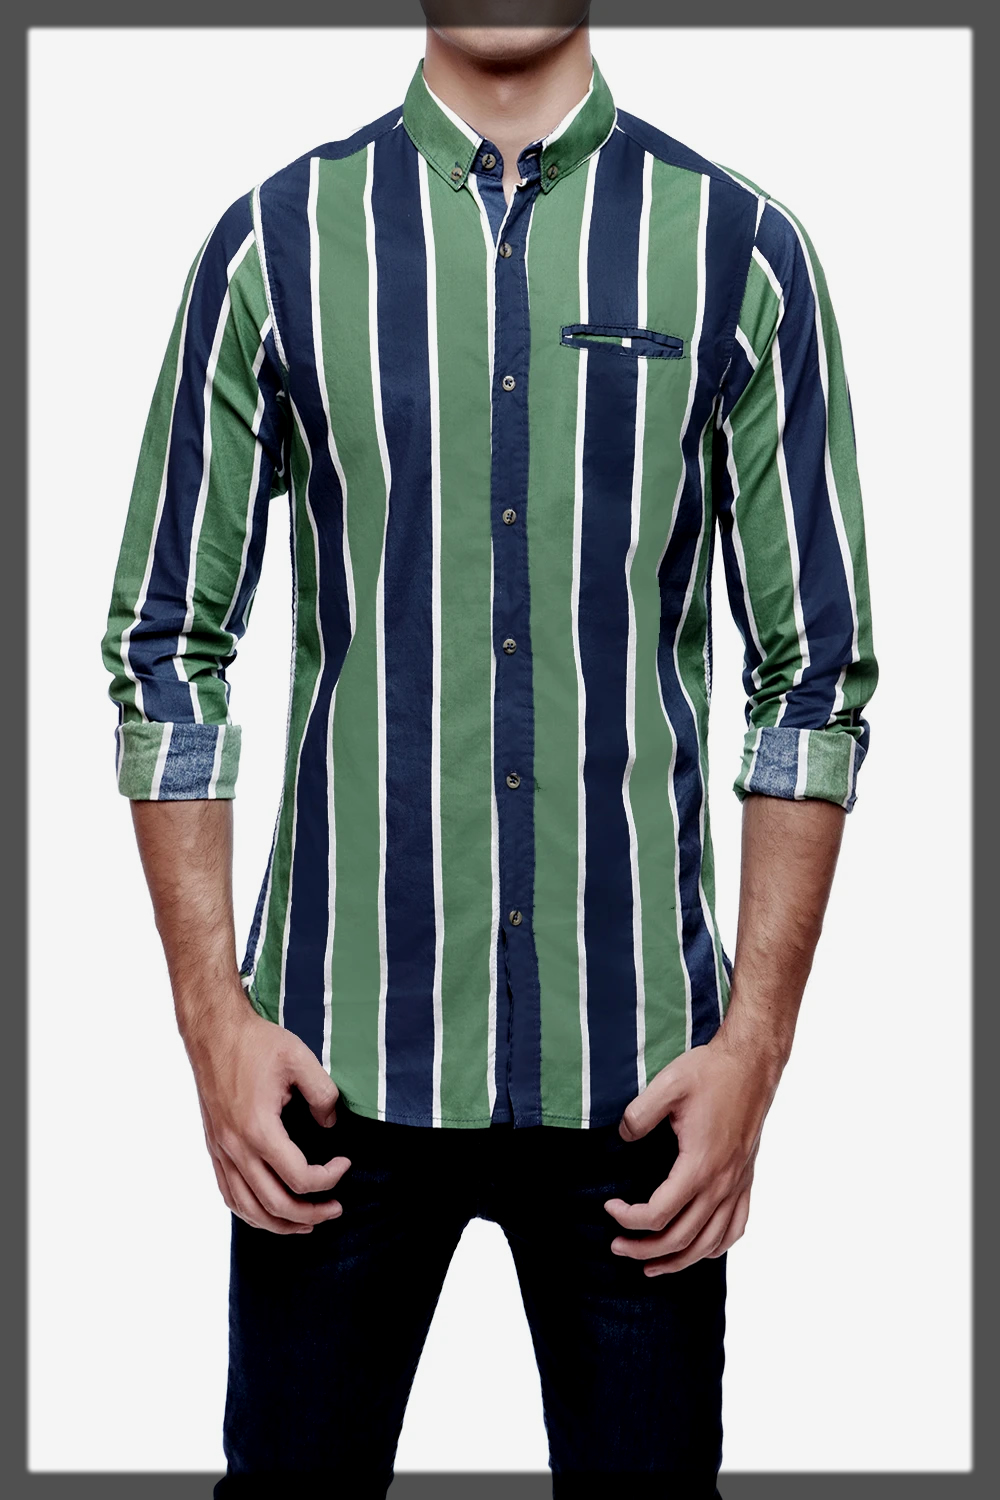 Striking Striped Shirts for Men